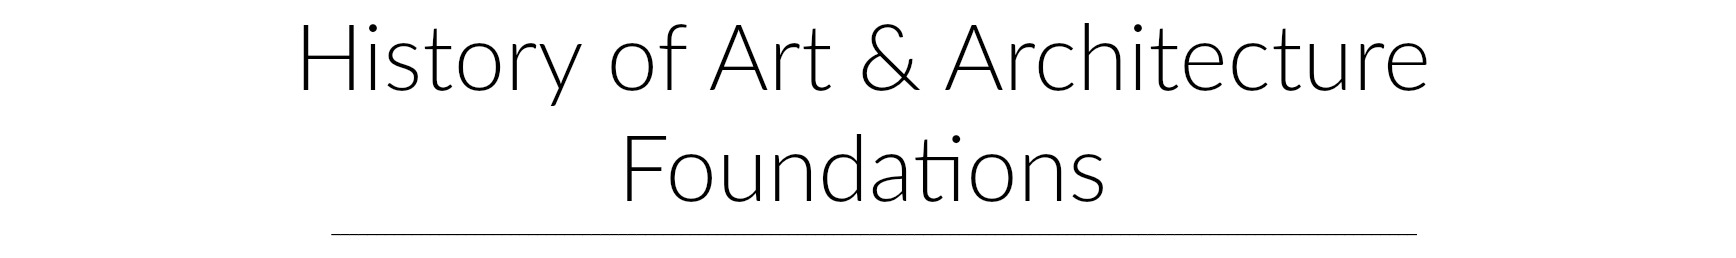 History of Art & Architecture Foundations